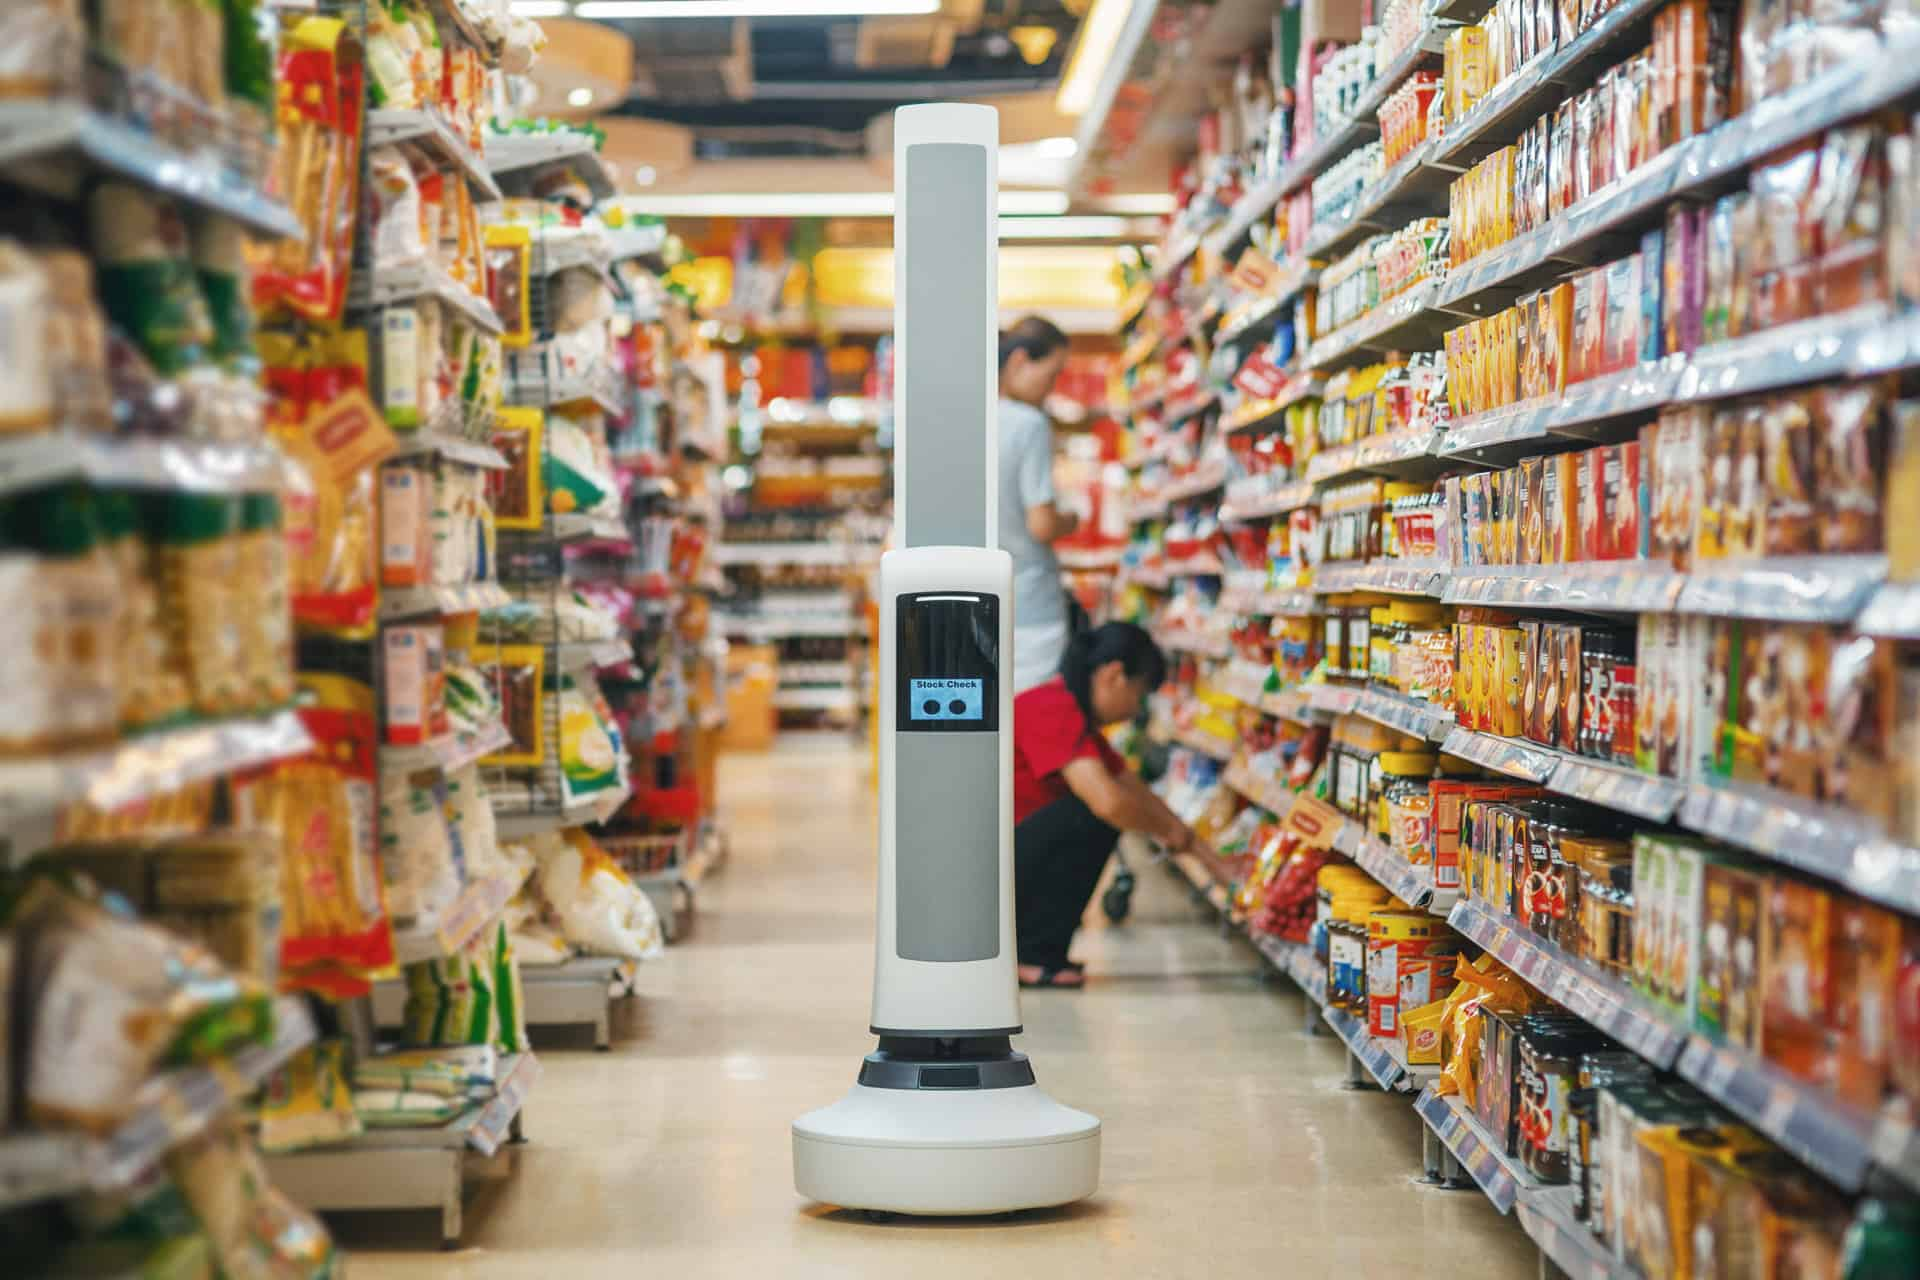 New Robot Will Keep Your Supermarket's Shelves Stocked